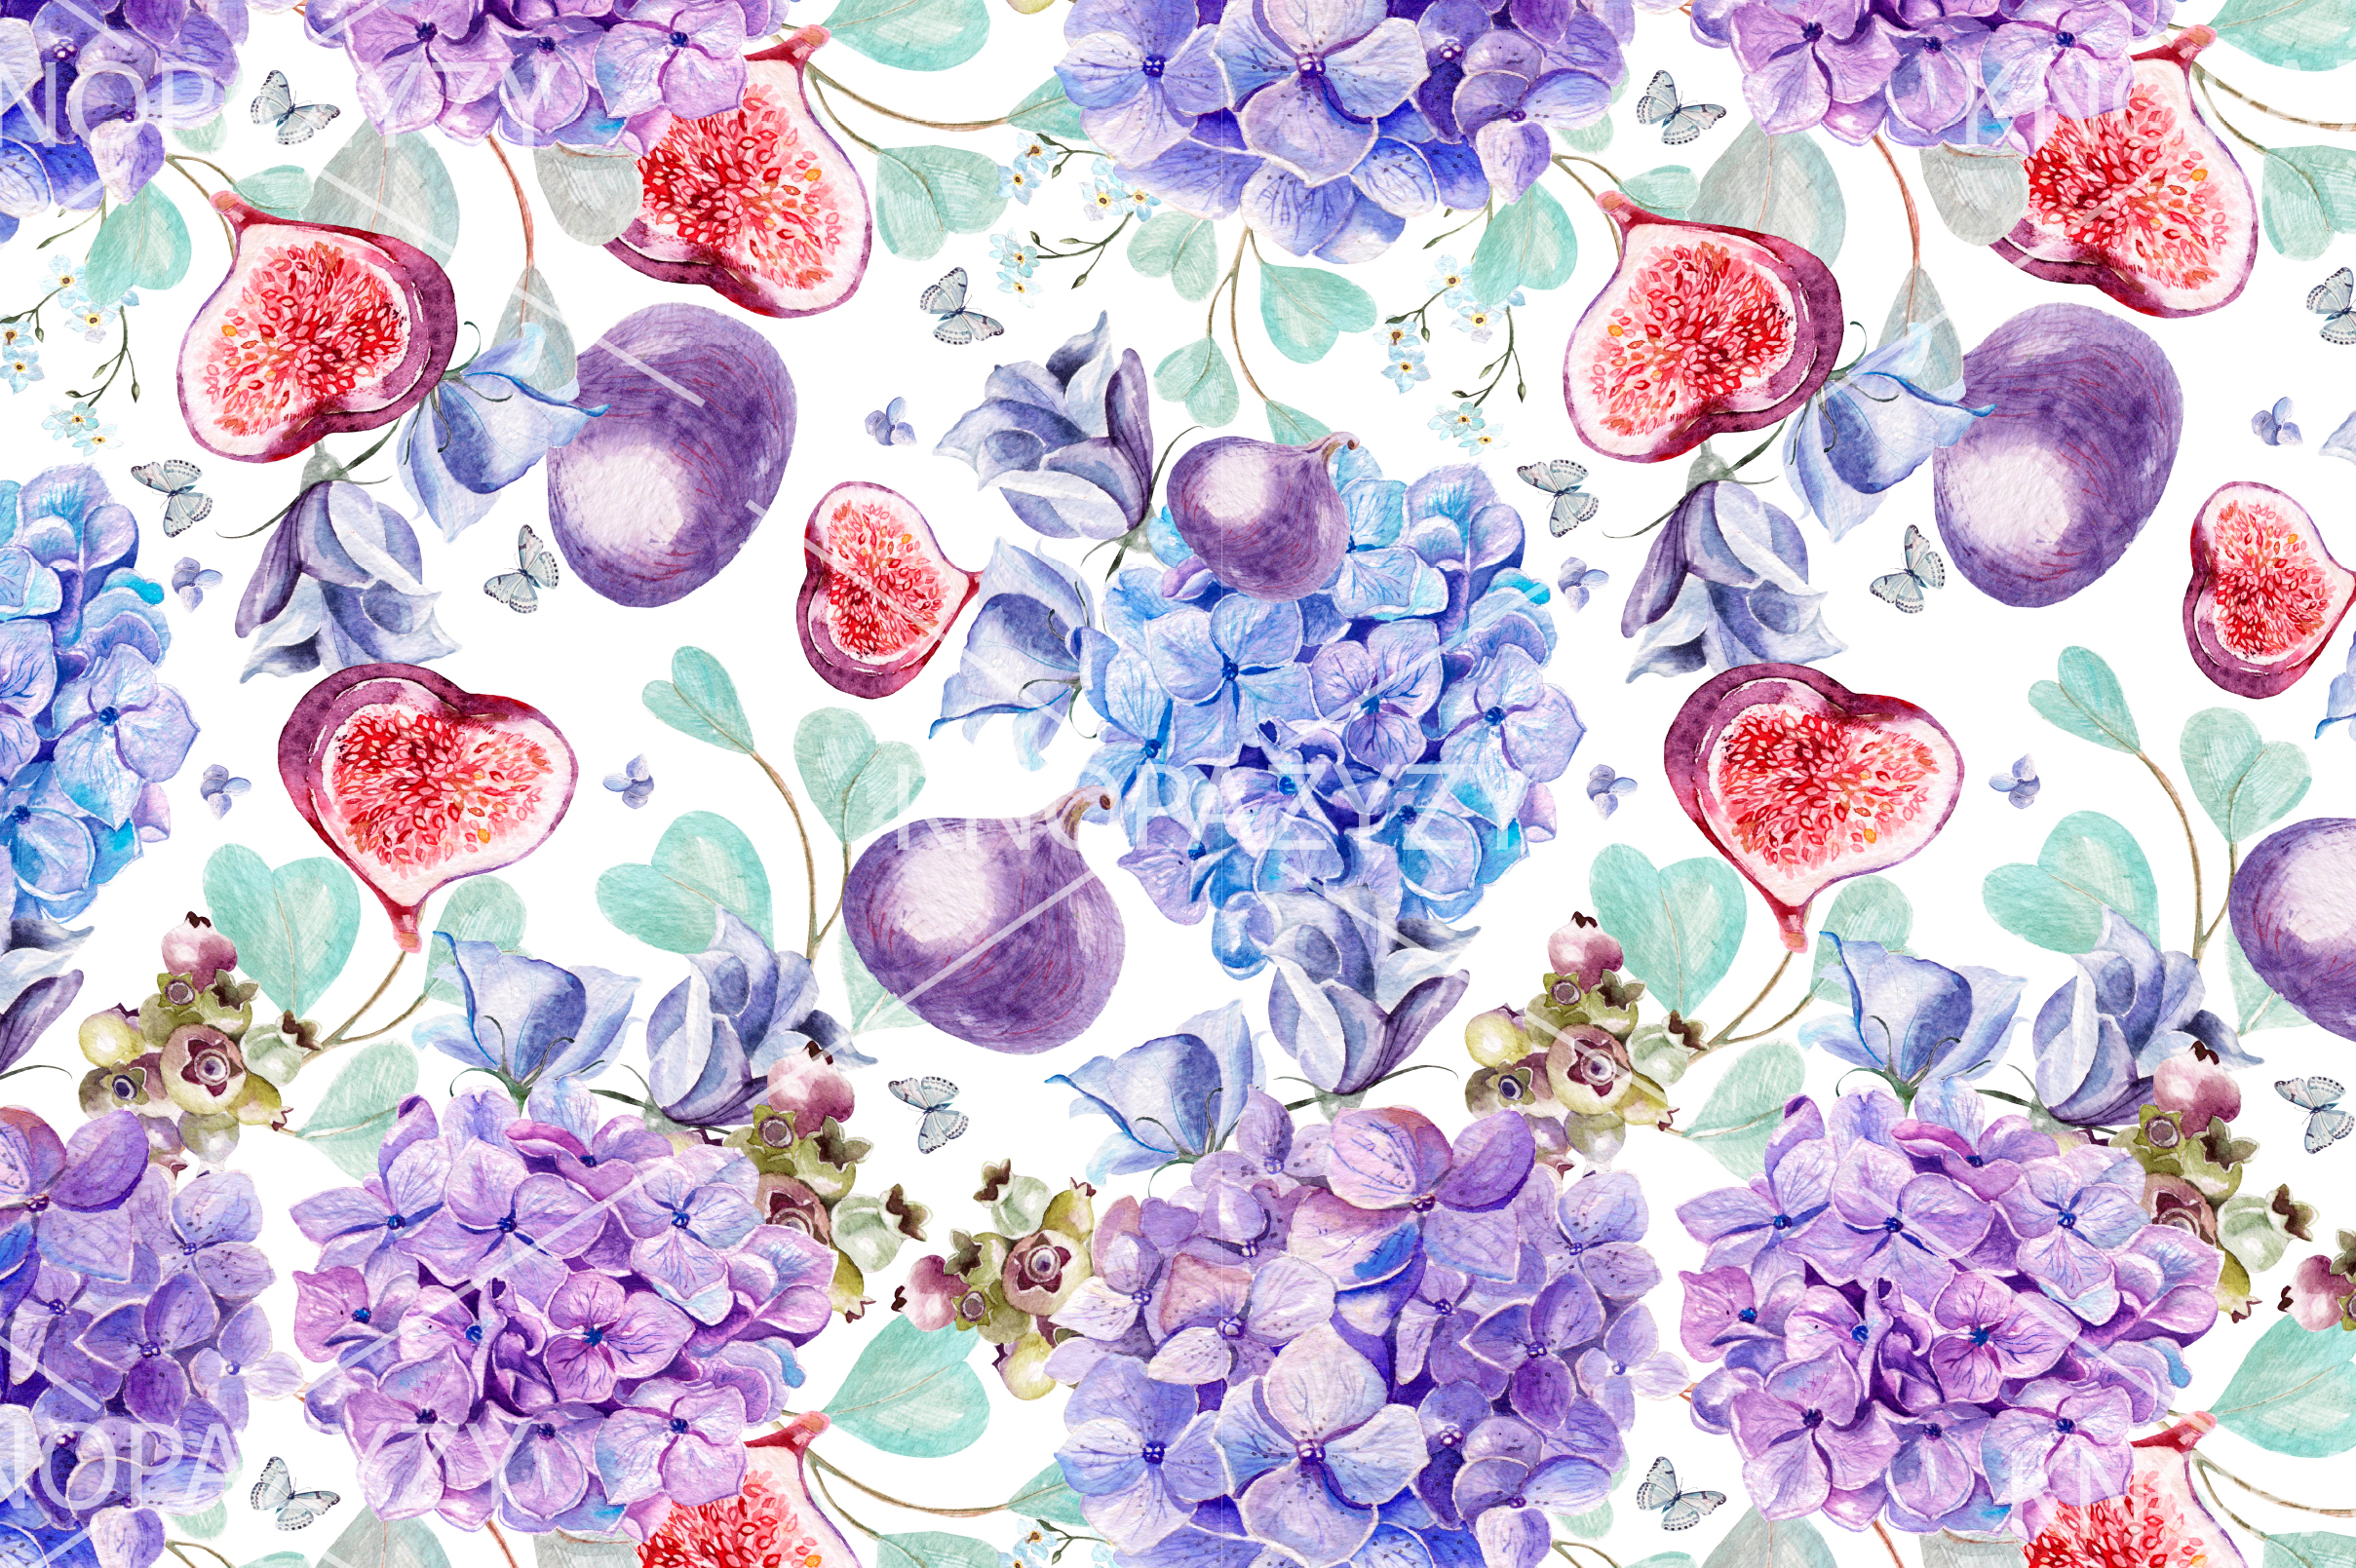 6 Hand Drawn Watercolor PATTERNS example image 7